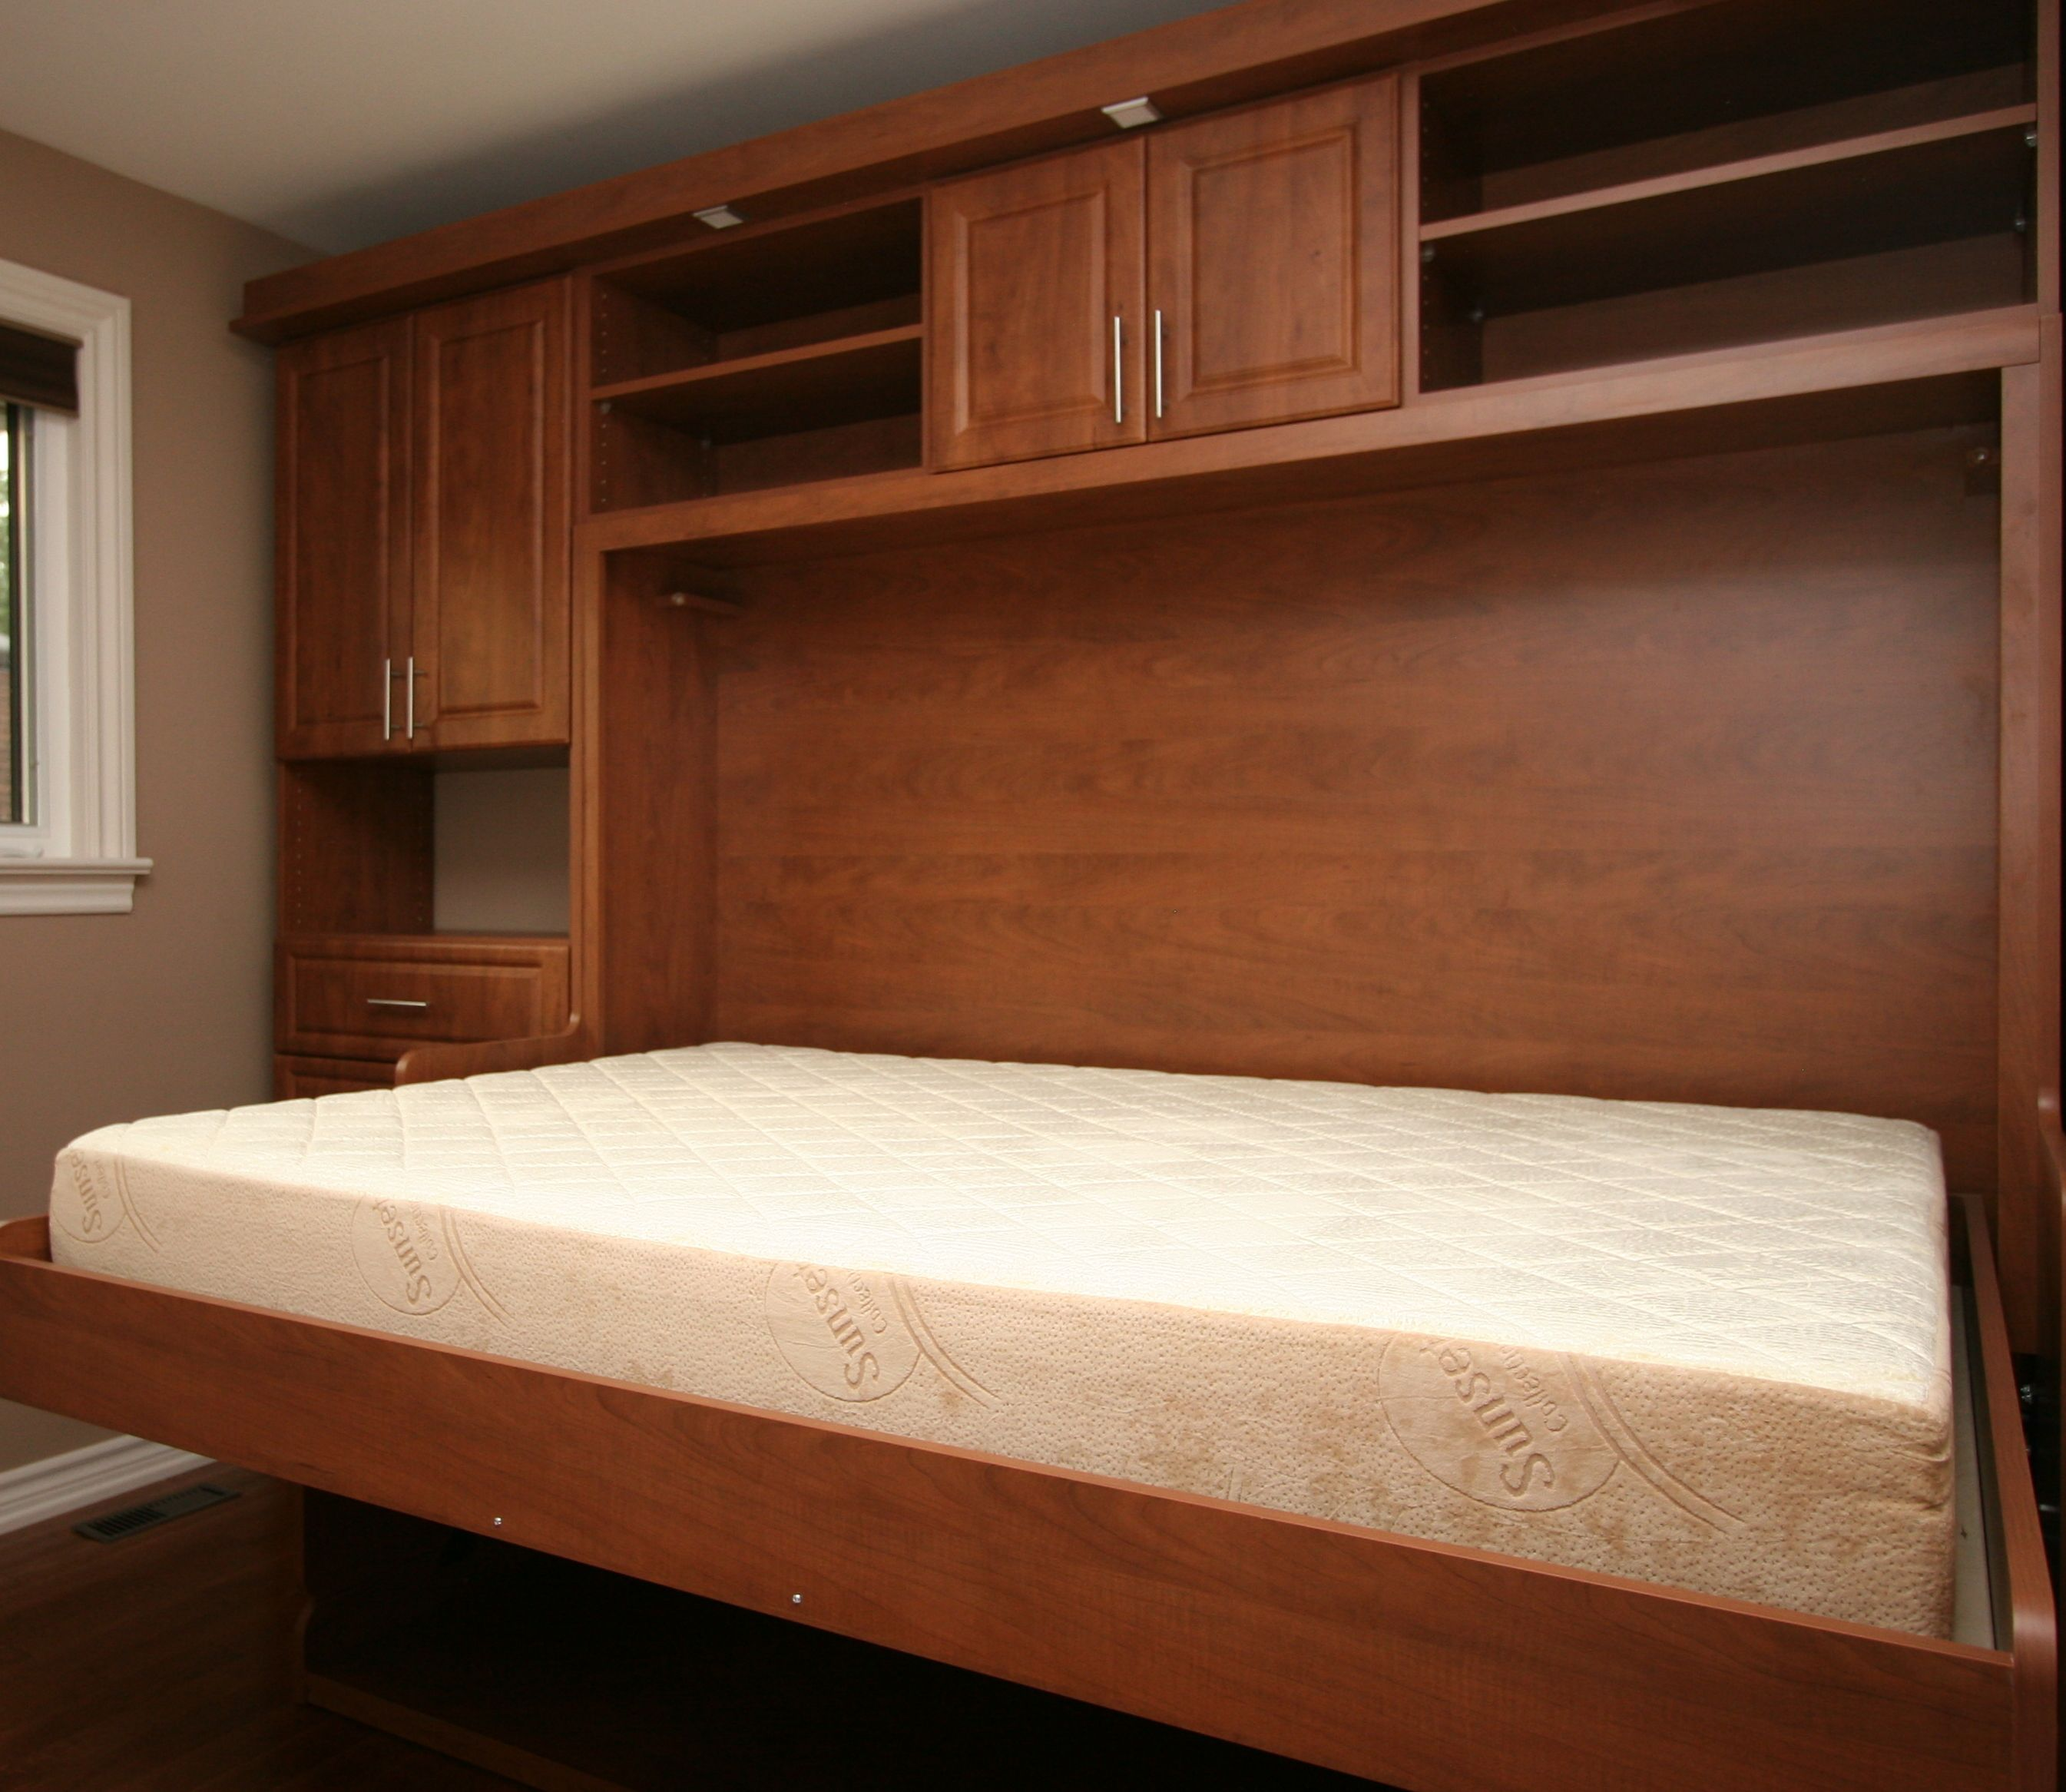 Desk By Day Opens Into Bed At Night And Everything Can Stay On The Hiddenbedcanada